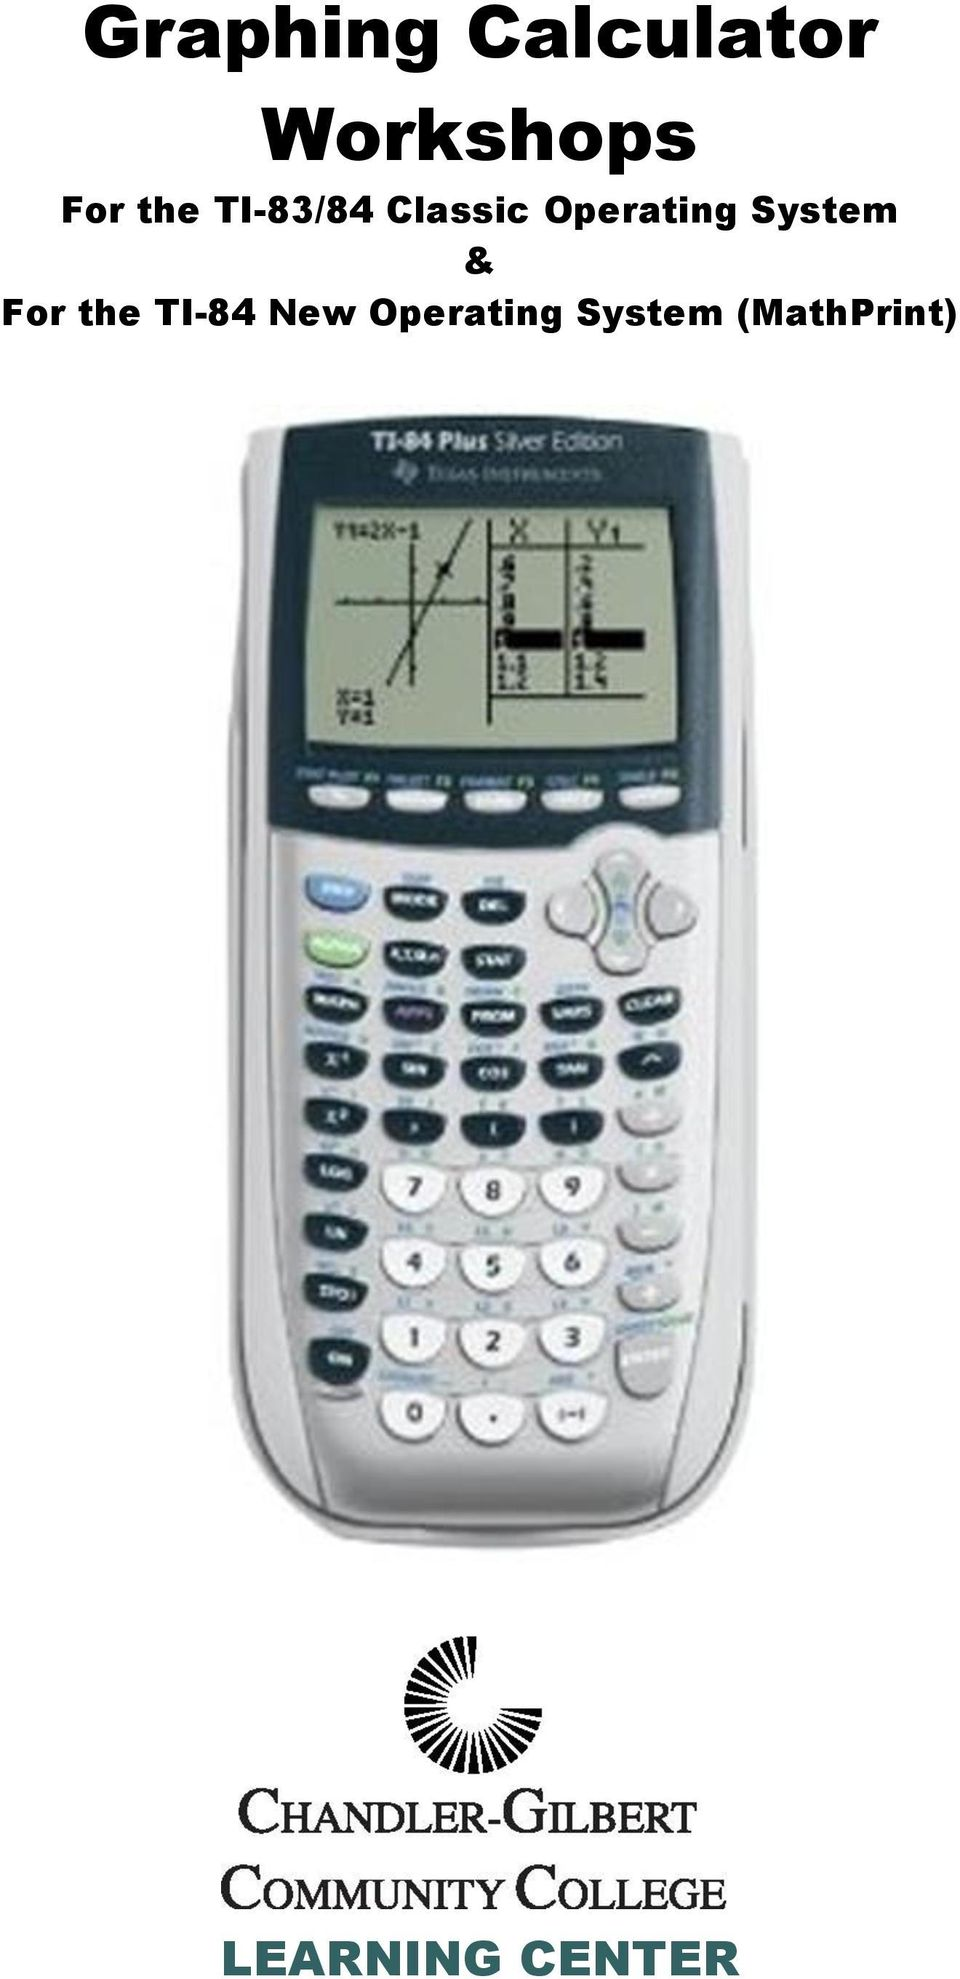 System & For the TI-84 New